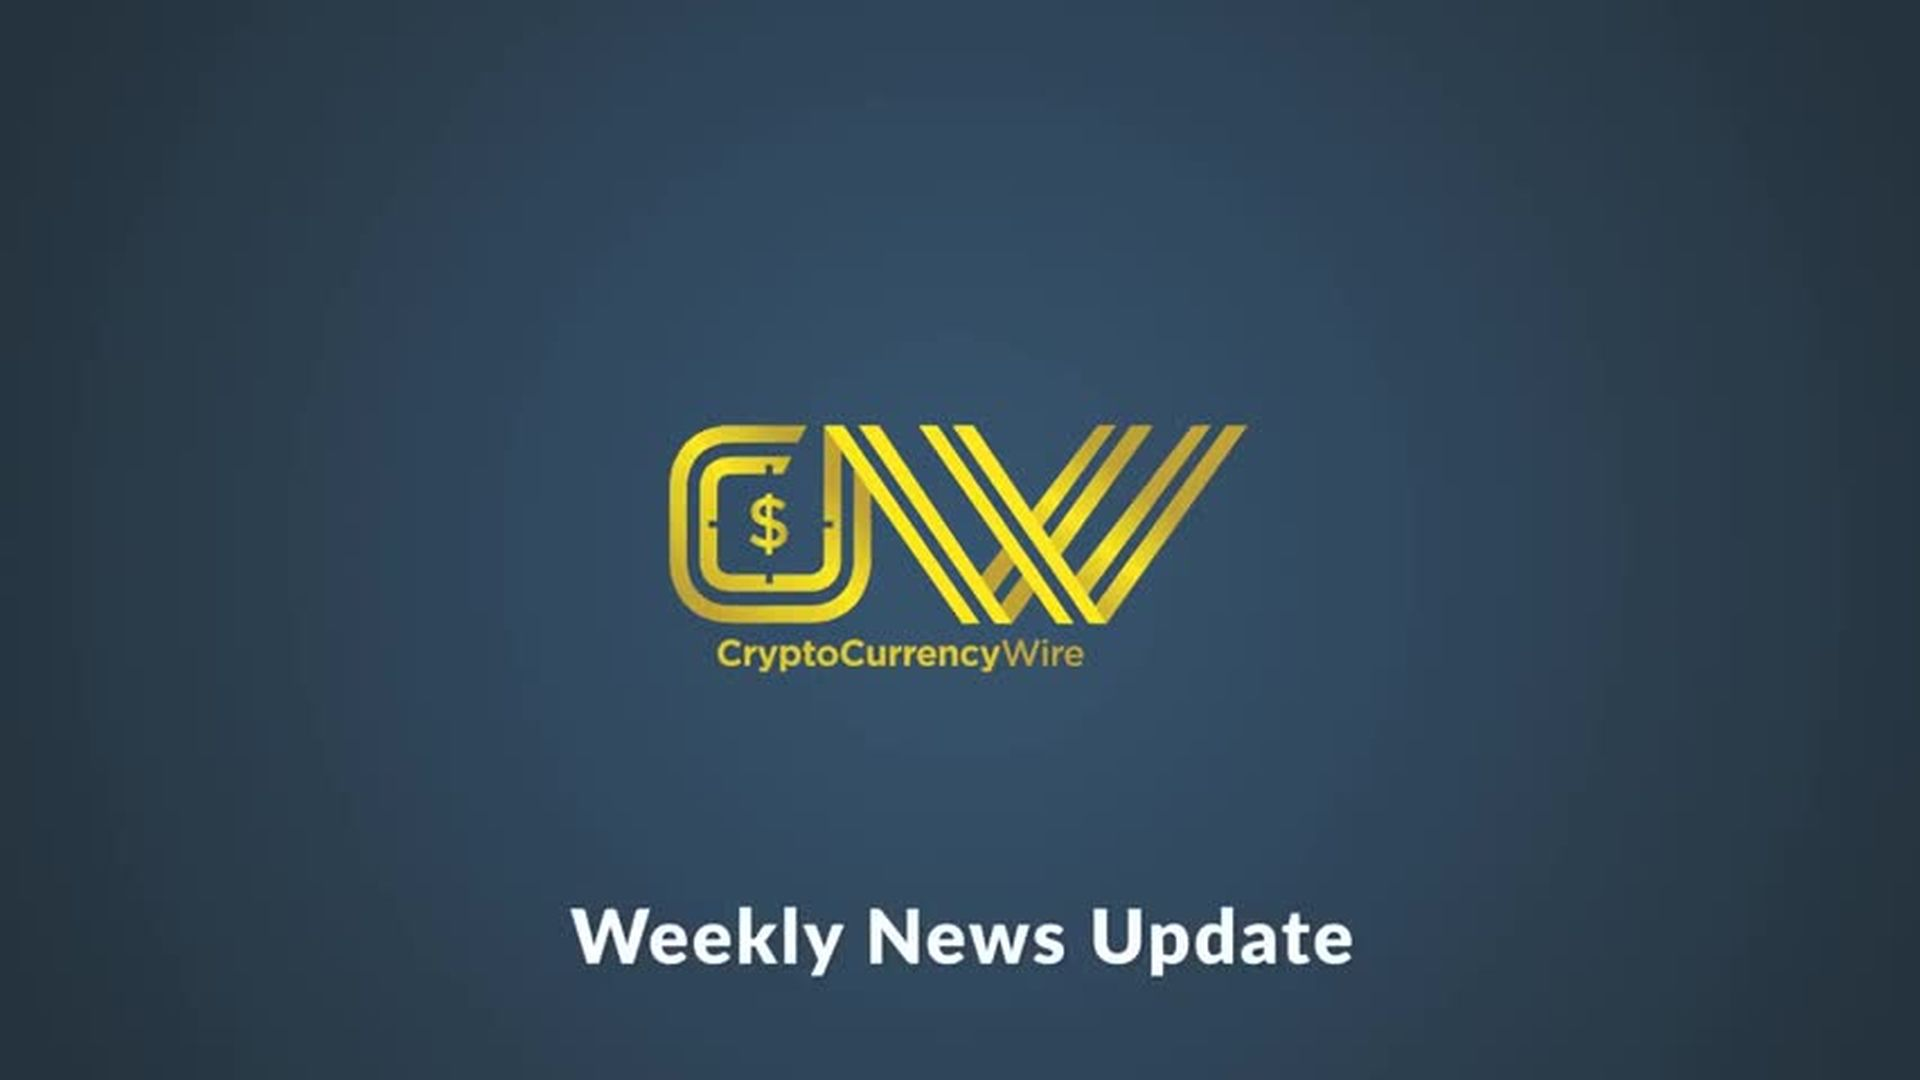 Cryptos and Global Finance | CryptoCurrencyWire on The Wild West Crypto Show | Episode 105